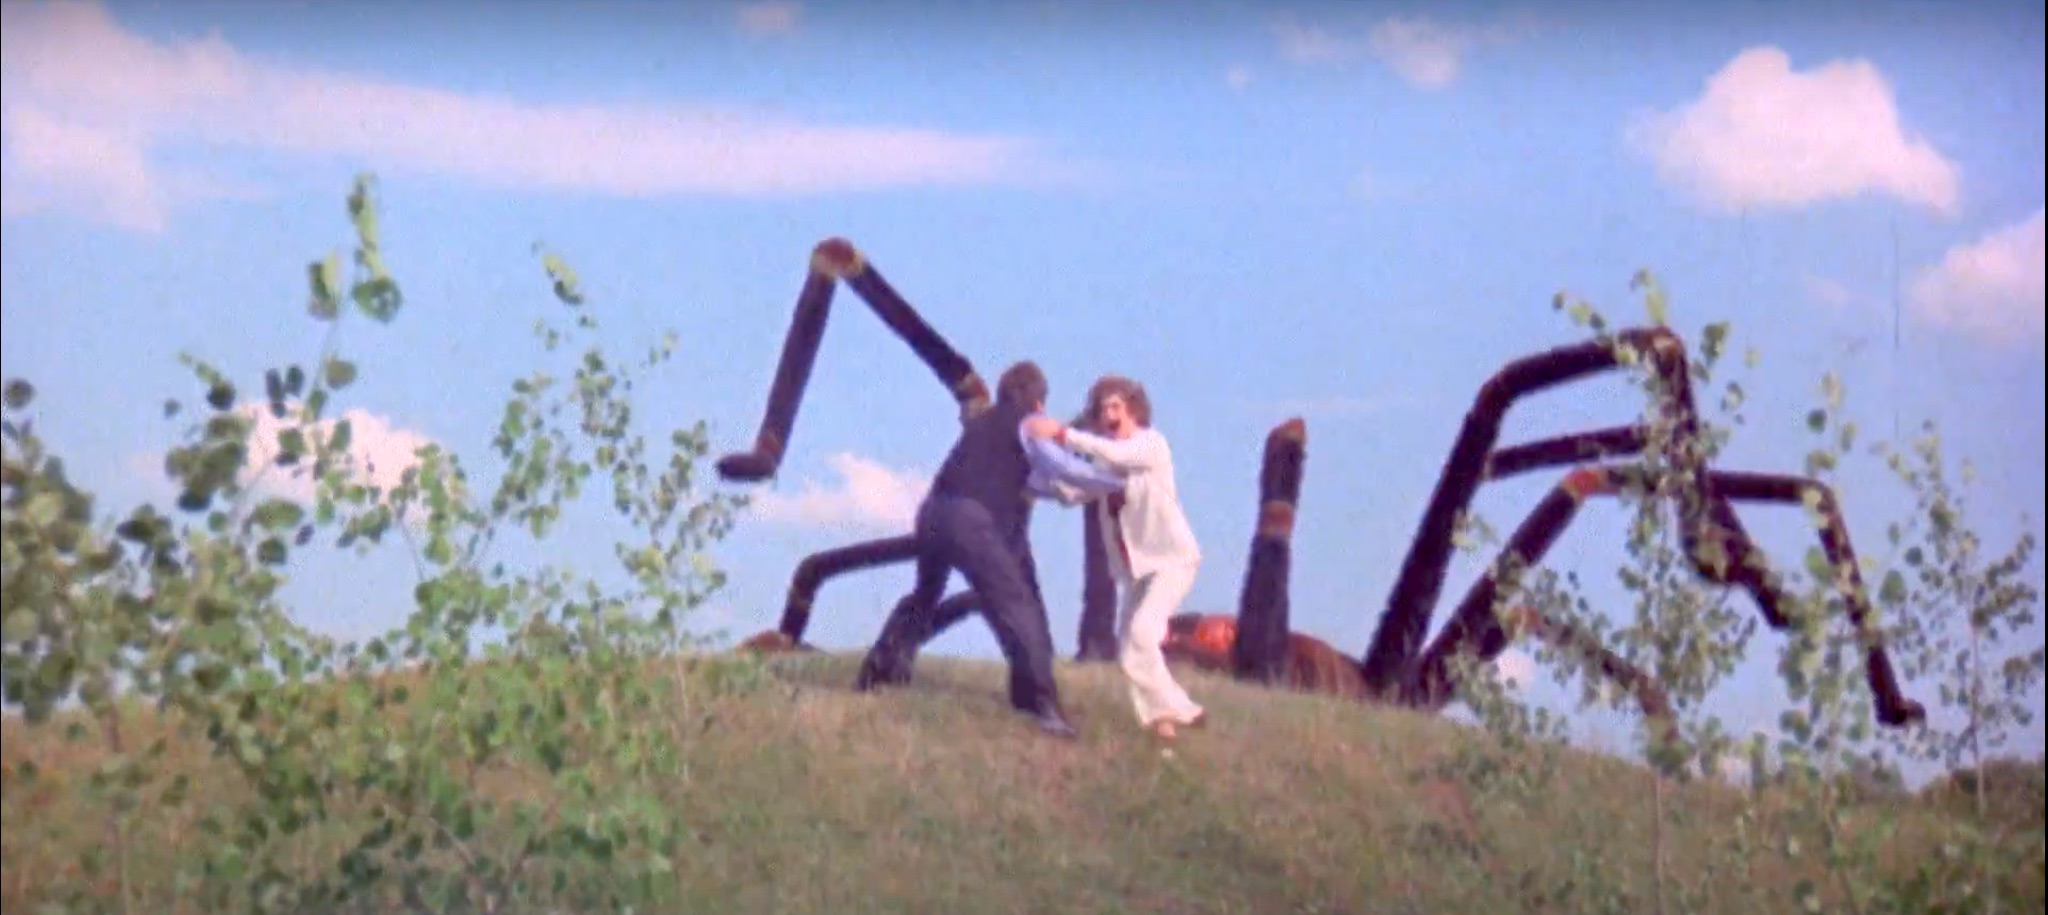 Giant spider coming over the hill, to eat our two scientists.